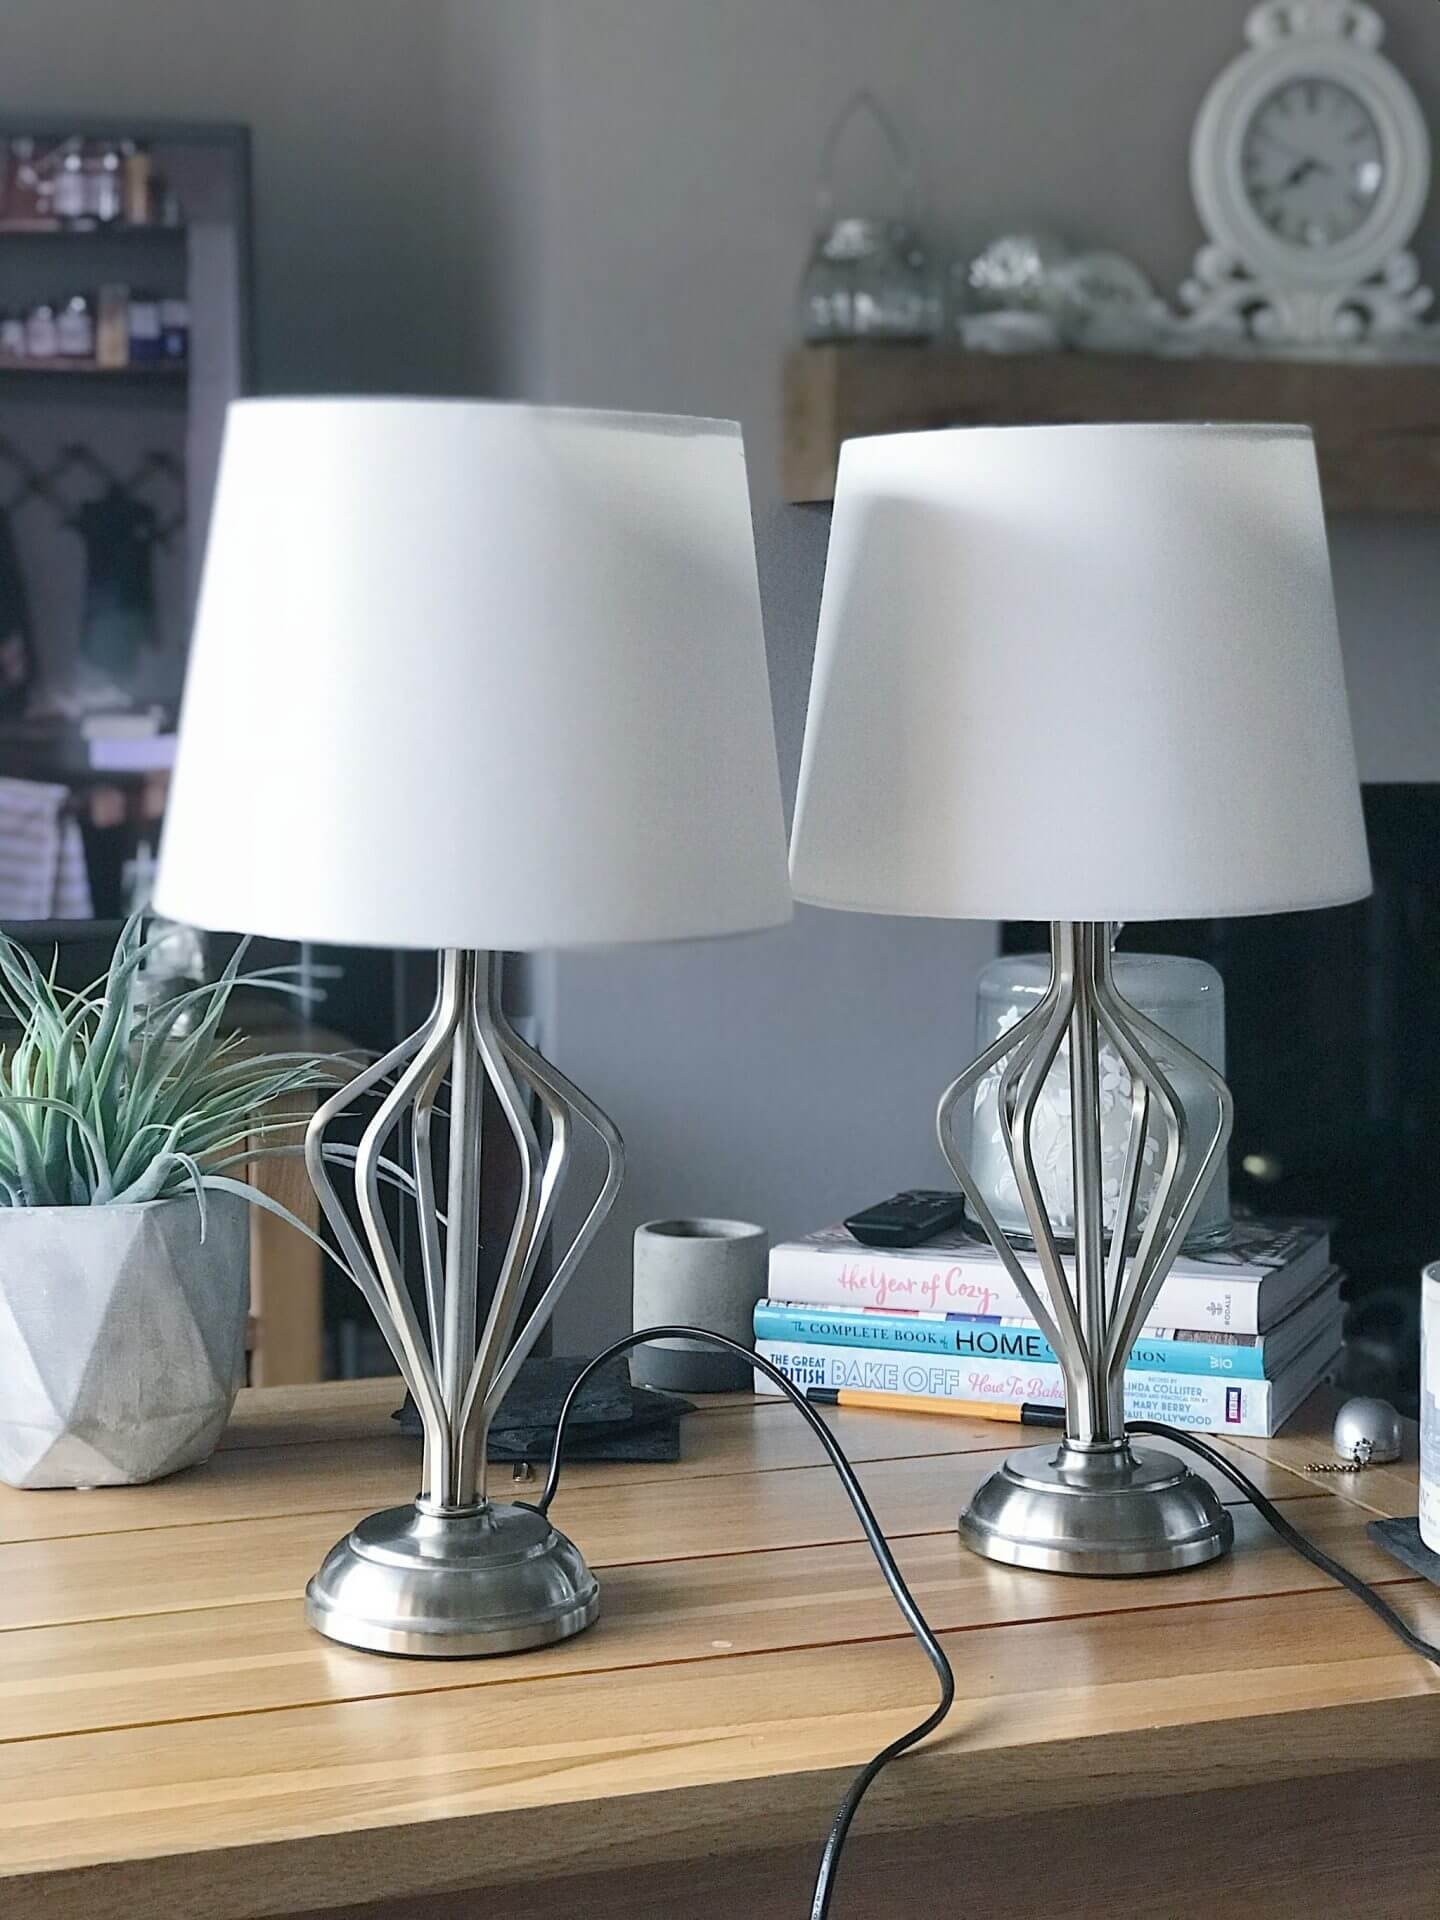 Lamps from First Choice Lighting, white shade and nickel stands and base